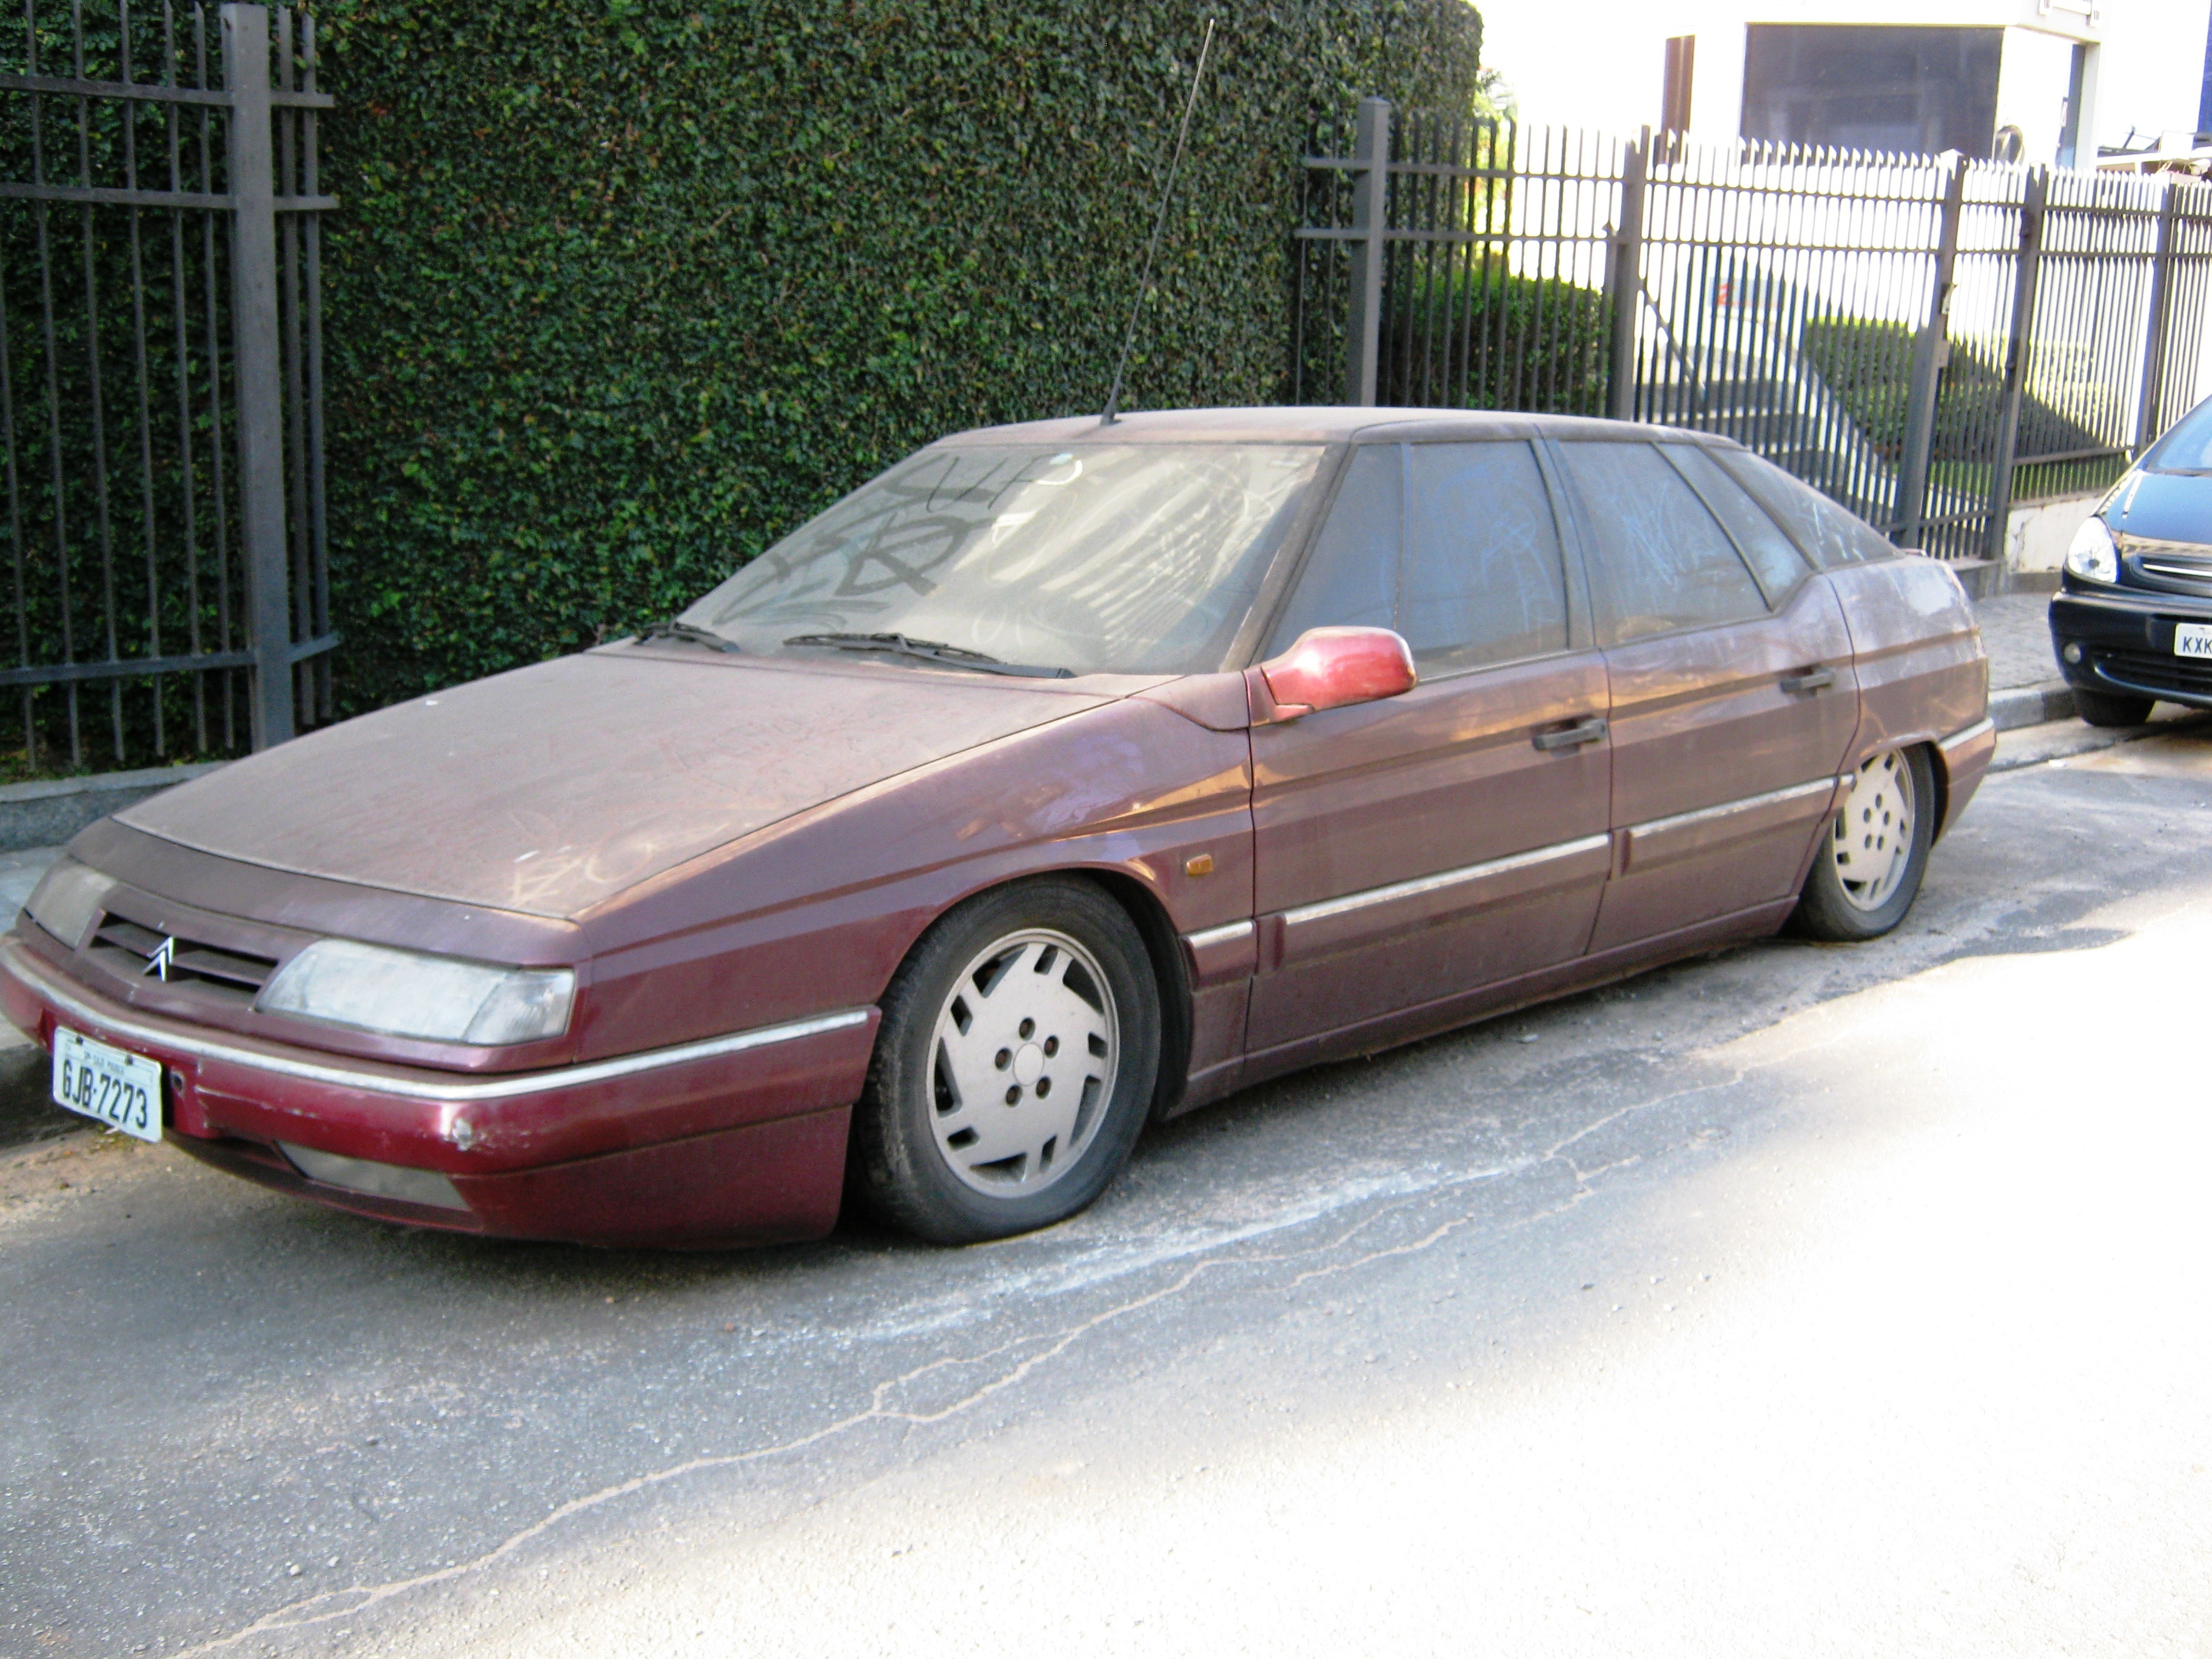 valuck-citroen-xm-butanta-sp-2 Citroën Xm